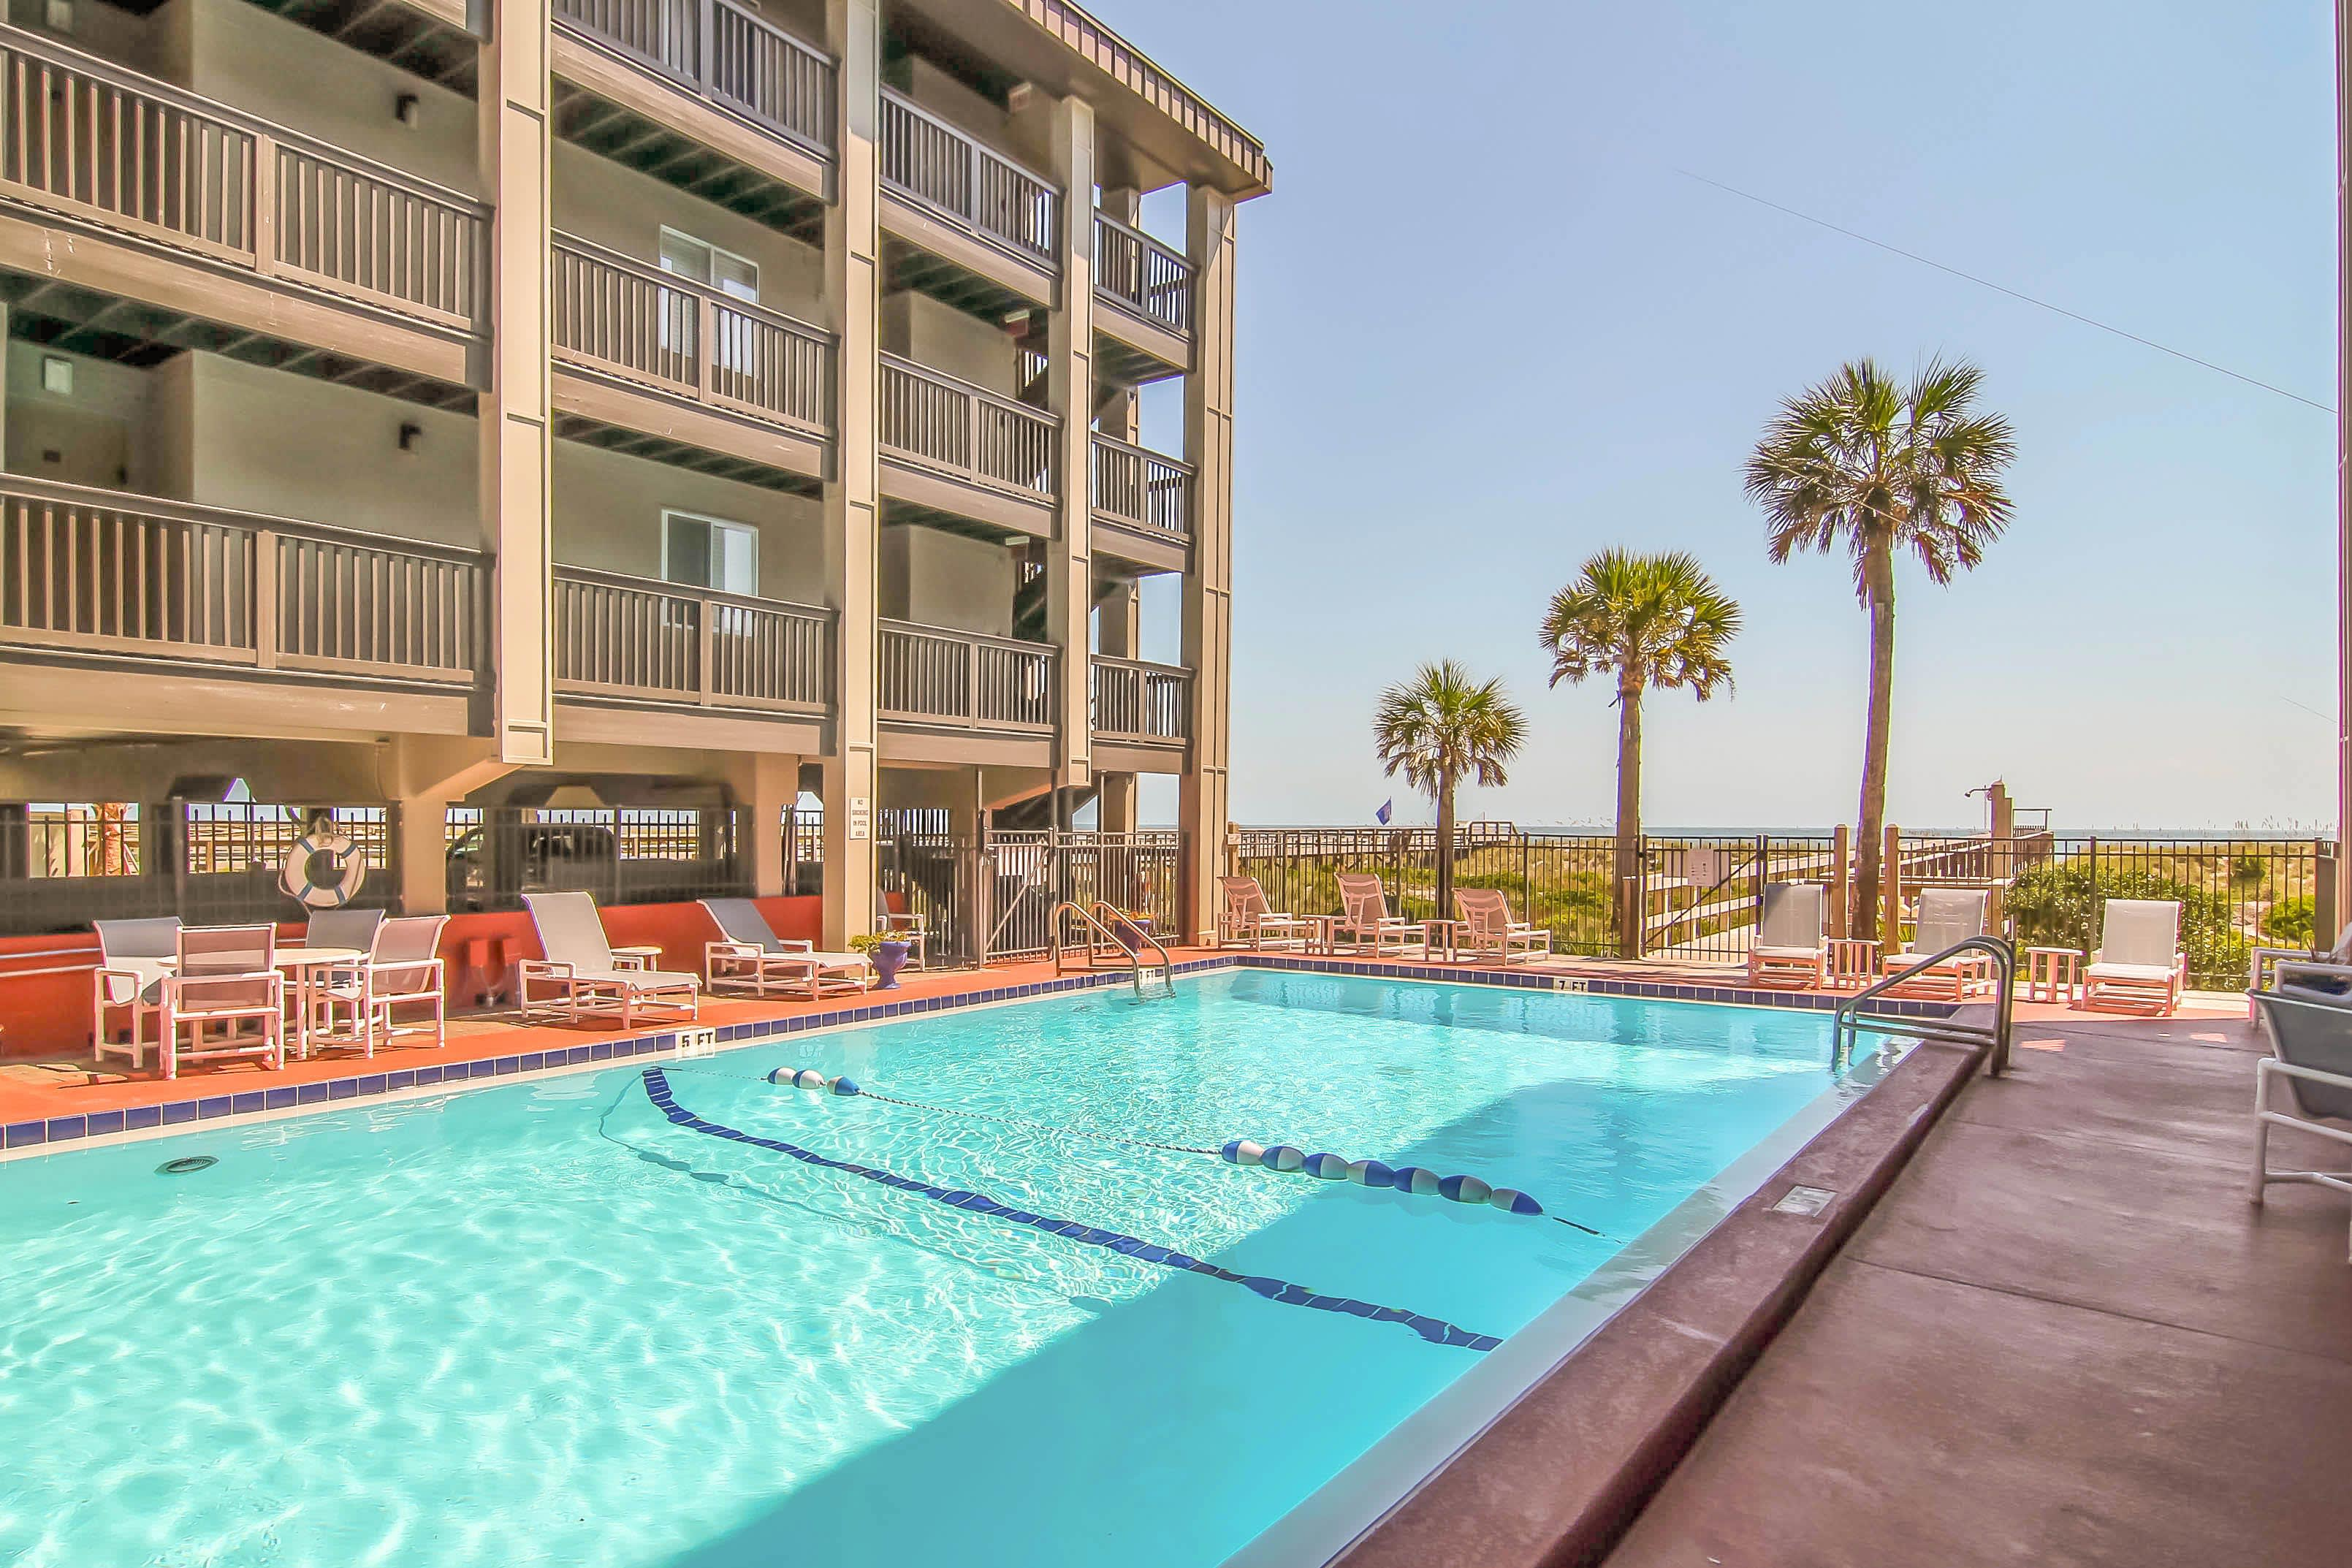 Soak up the sun by the community pool!